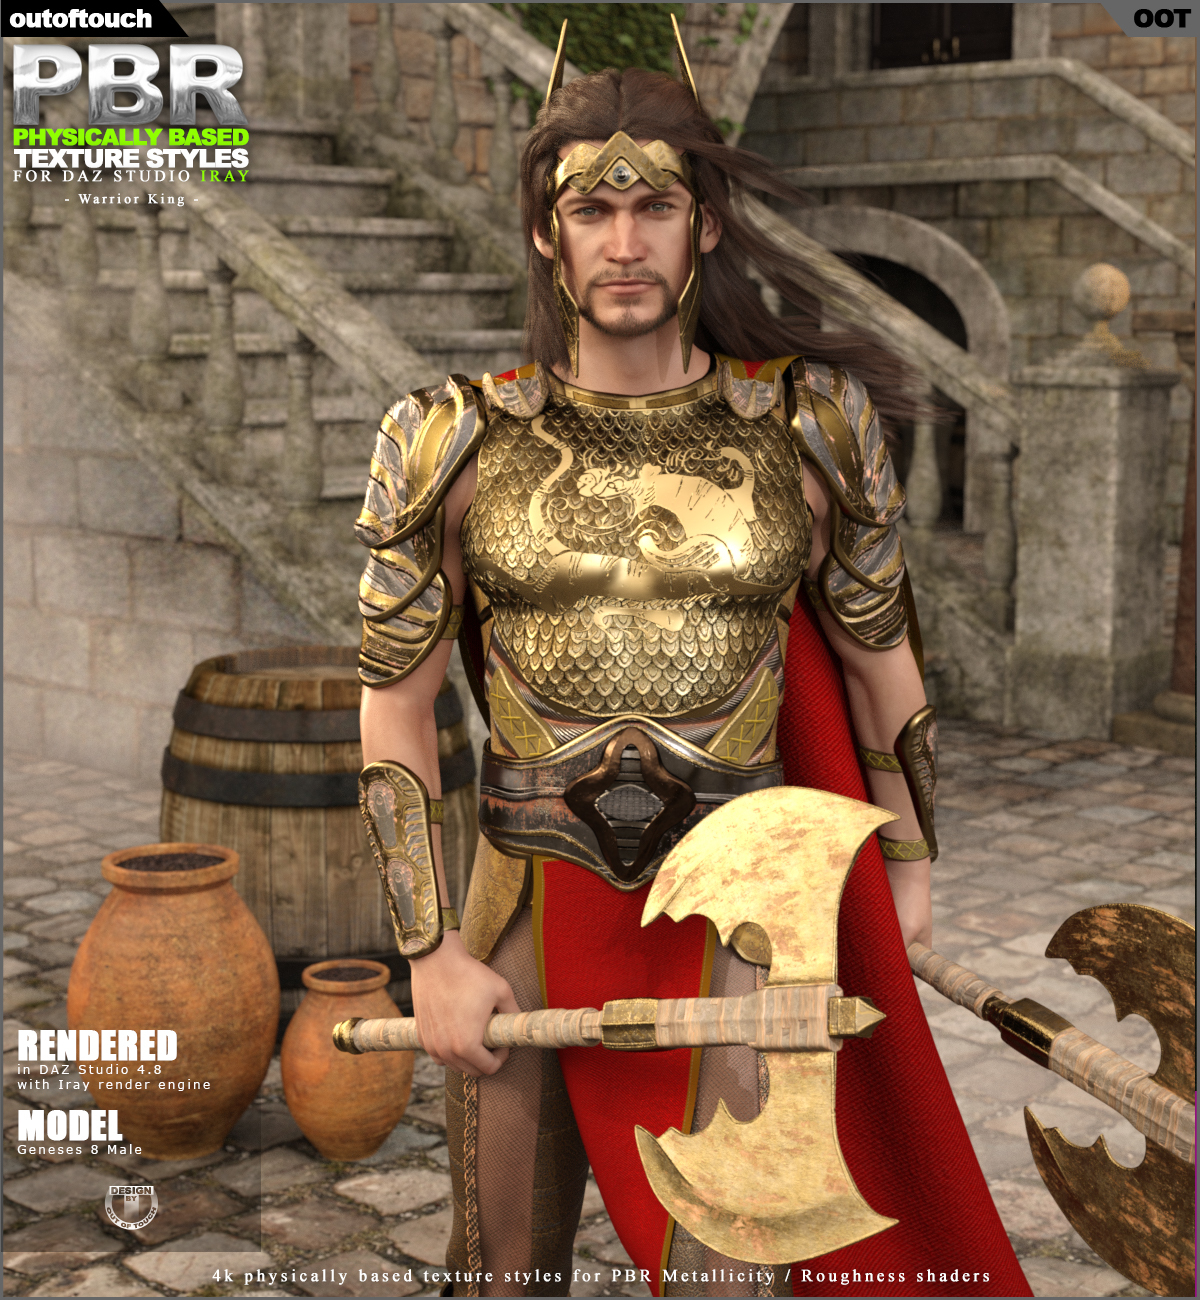 OOT PBR Texture Styles for Warrior King